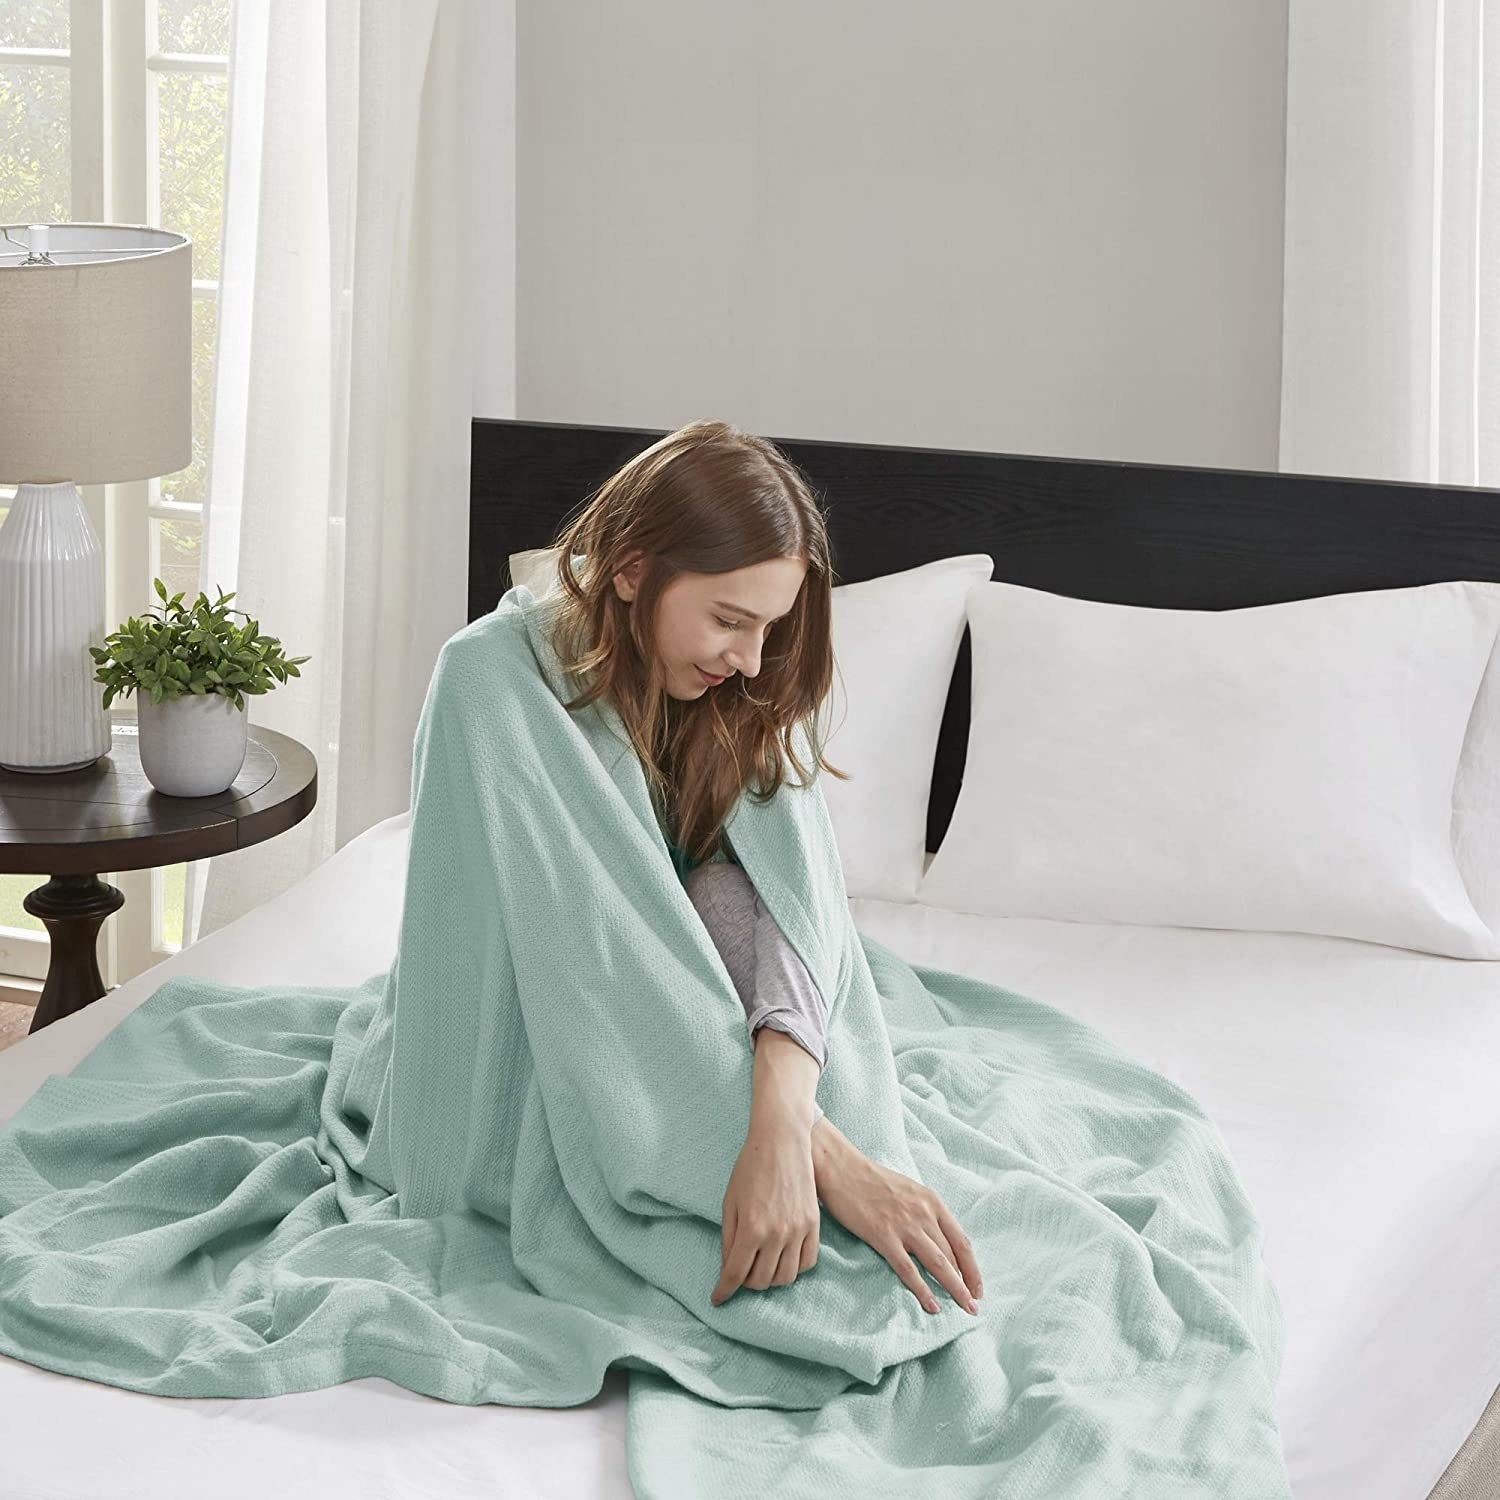 Model with throw blanket wrapped around their body